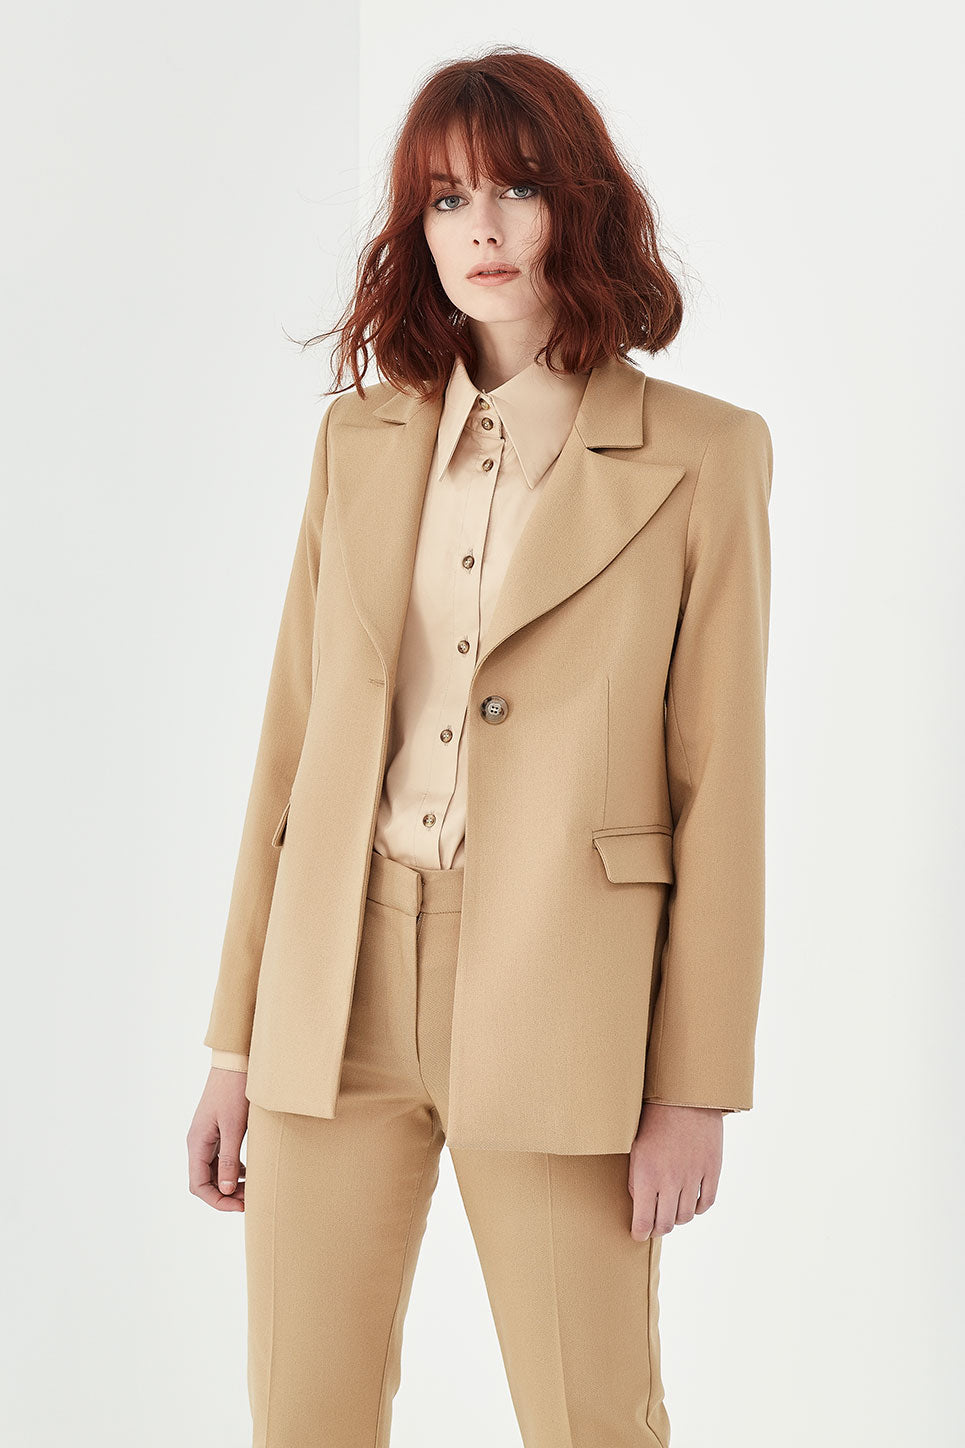 The Marlon Jacket in Tan